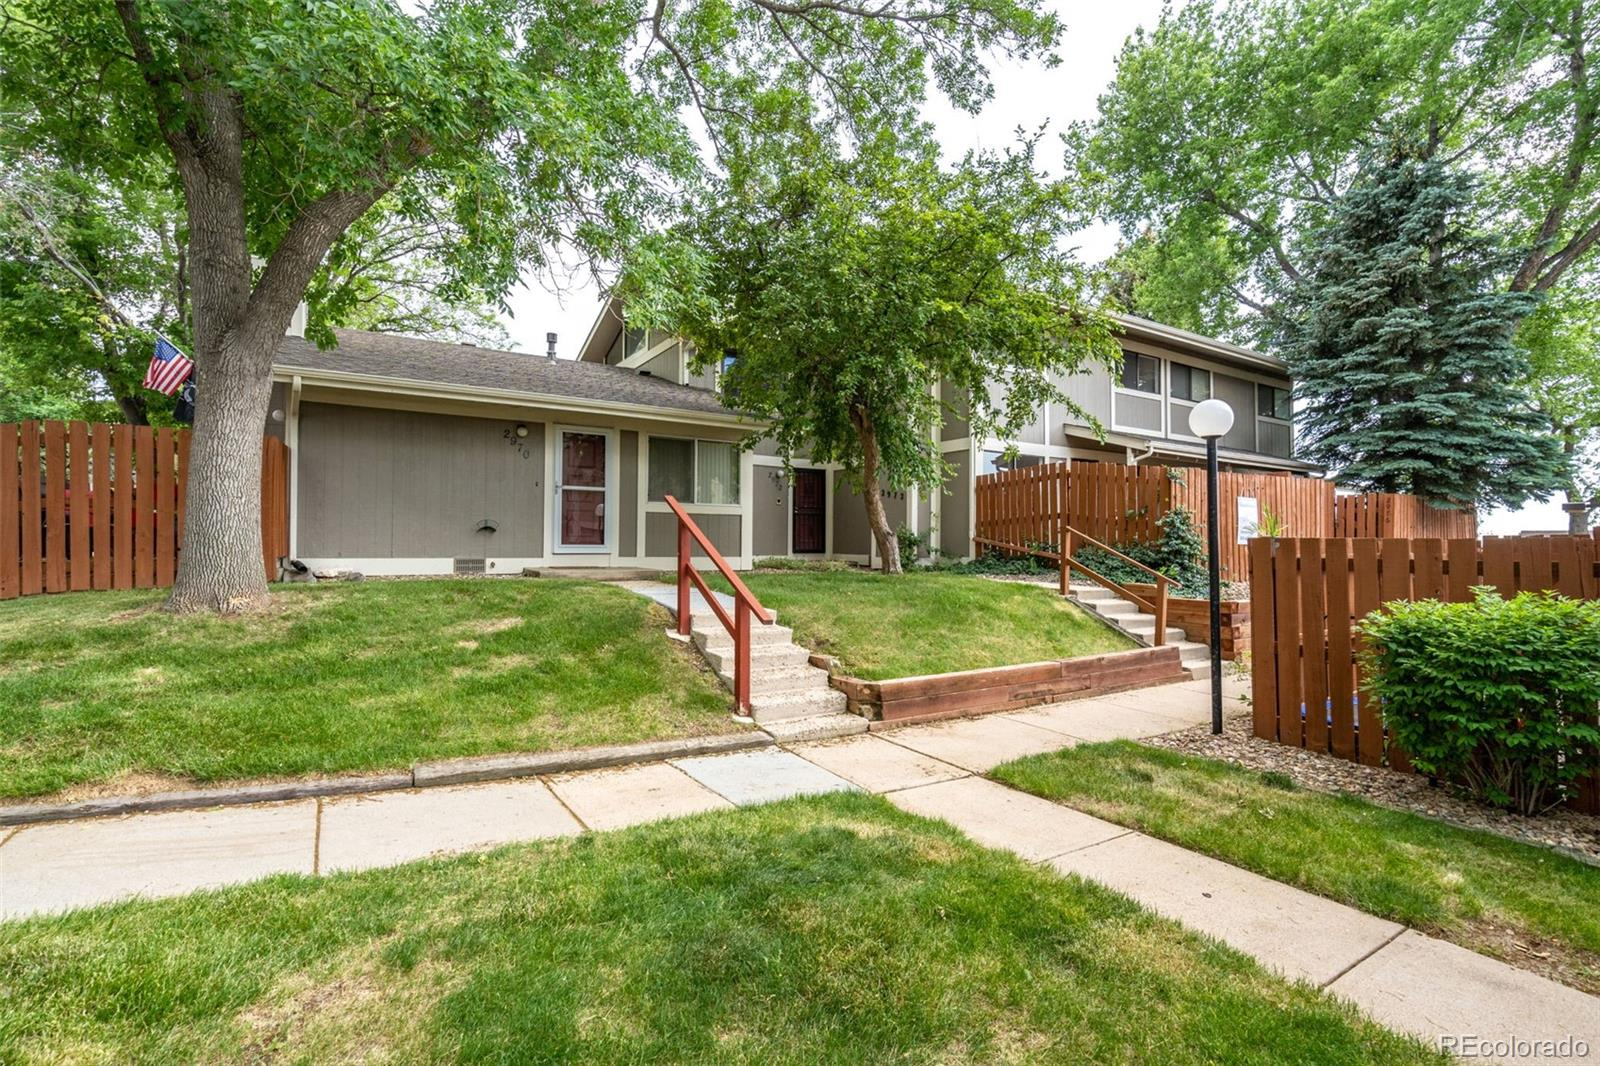 2974 W 119th Avenue, Westminster CO 80234